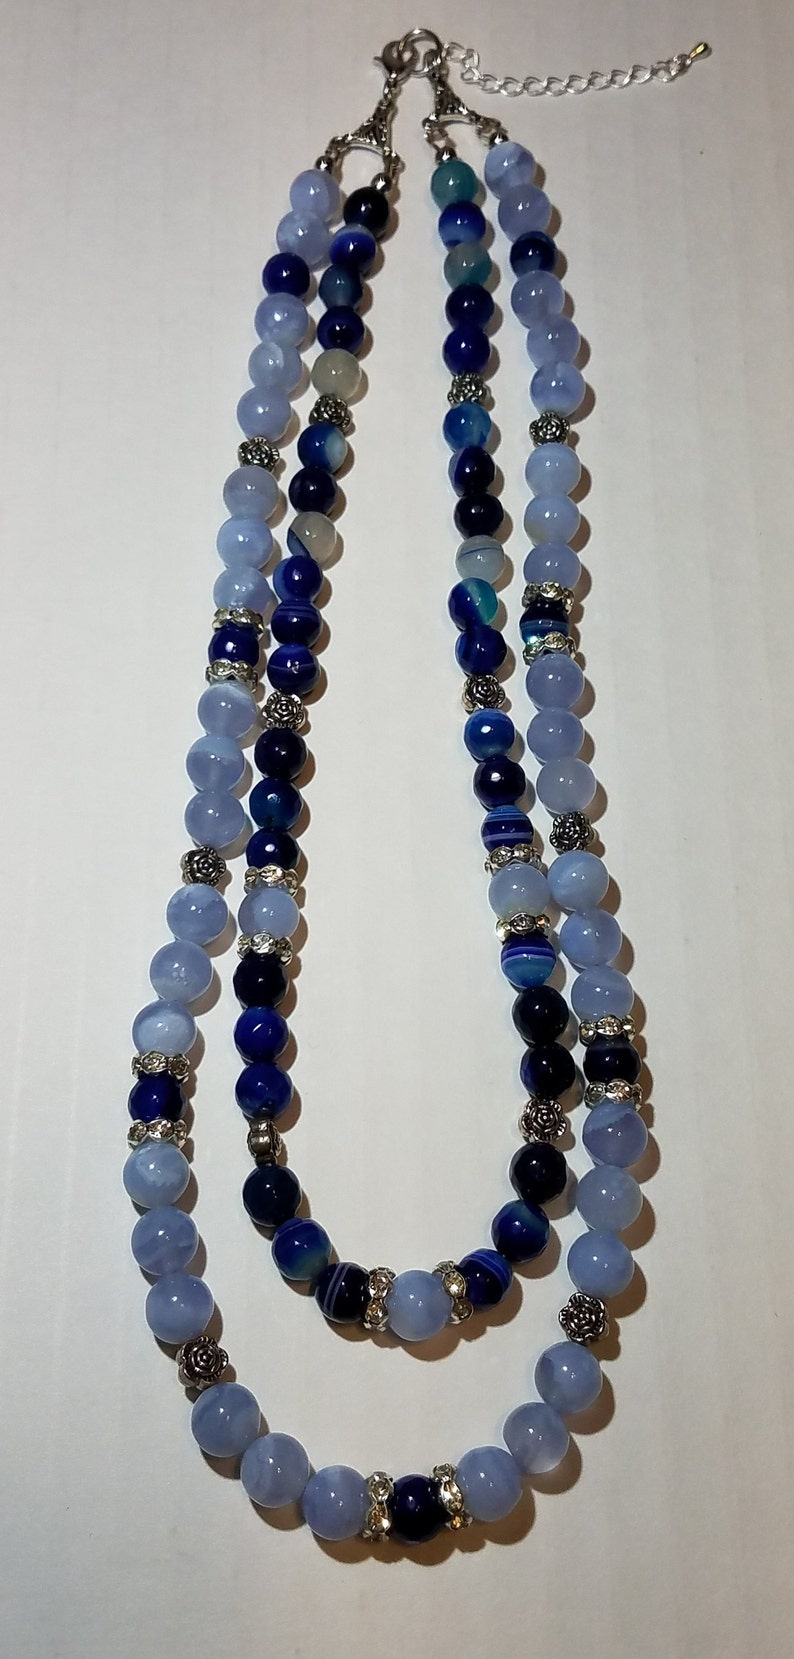 Double Strand Blue Agate Necklace